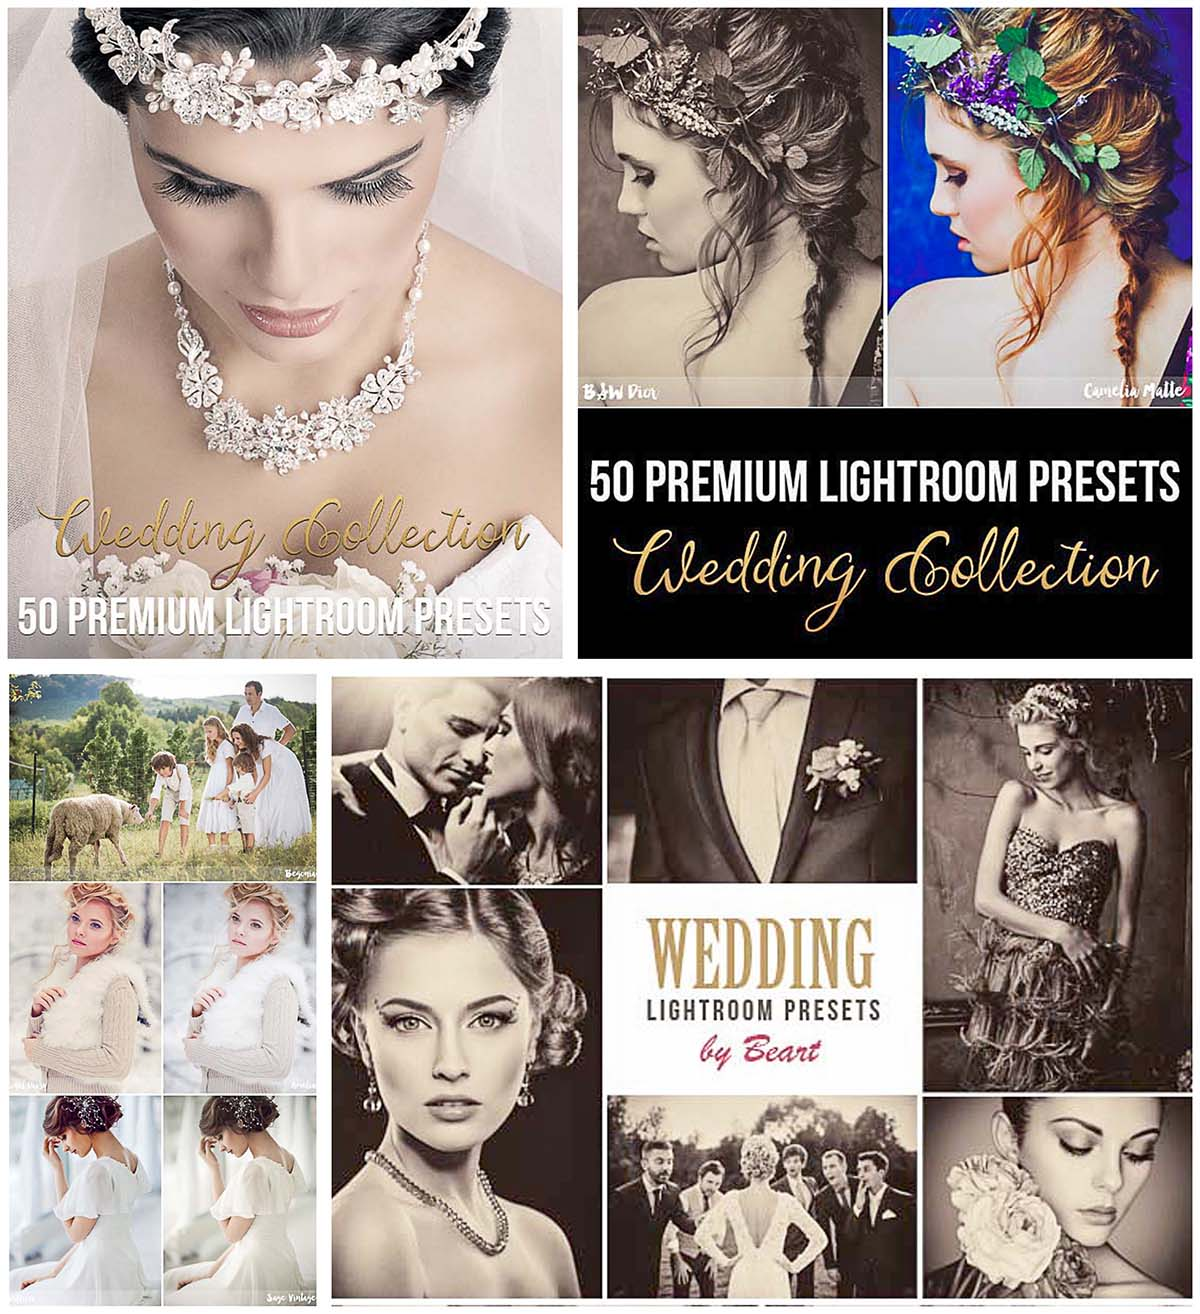 50 Wedding lightroom presets set